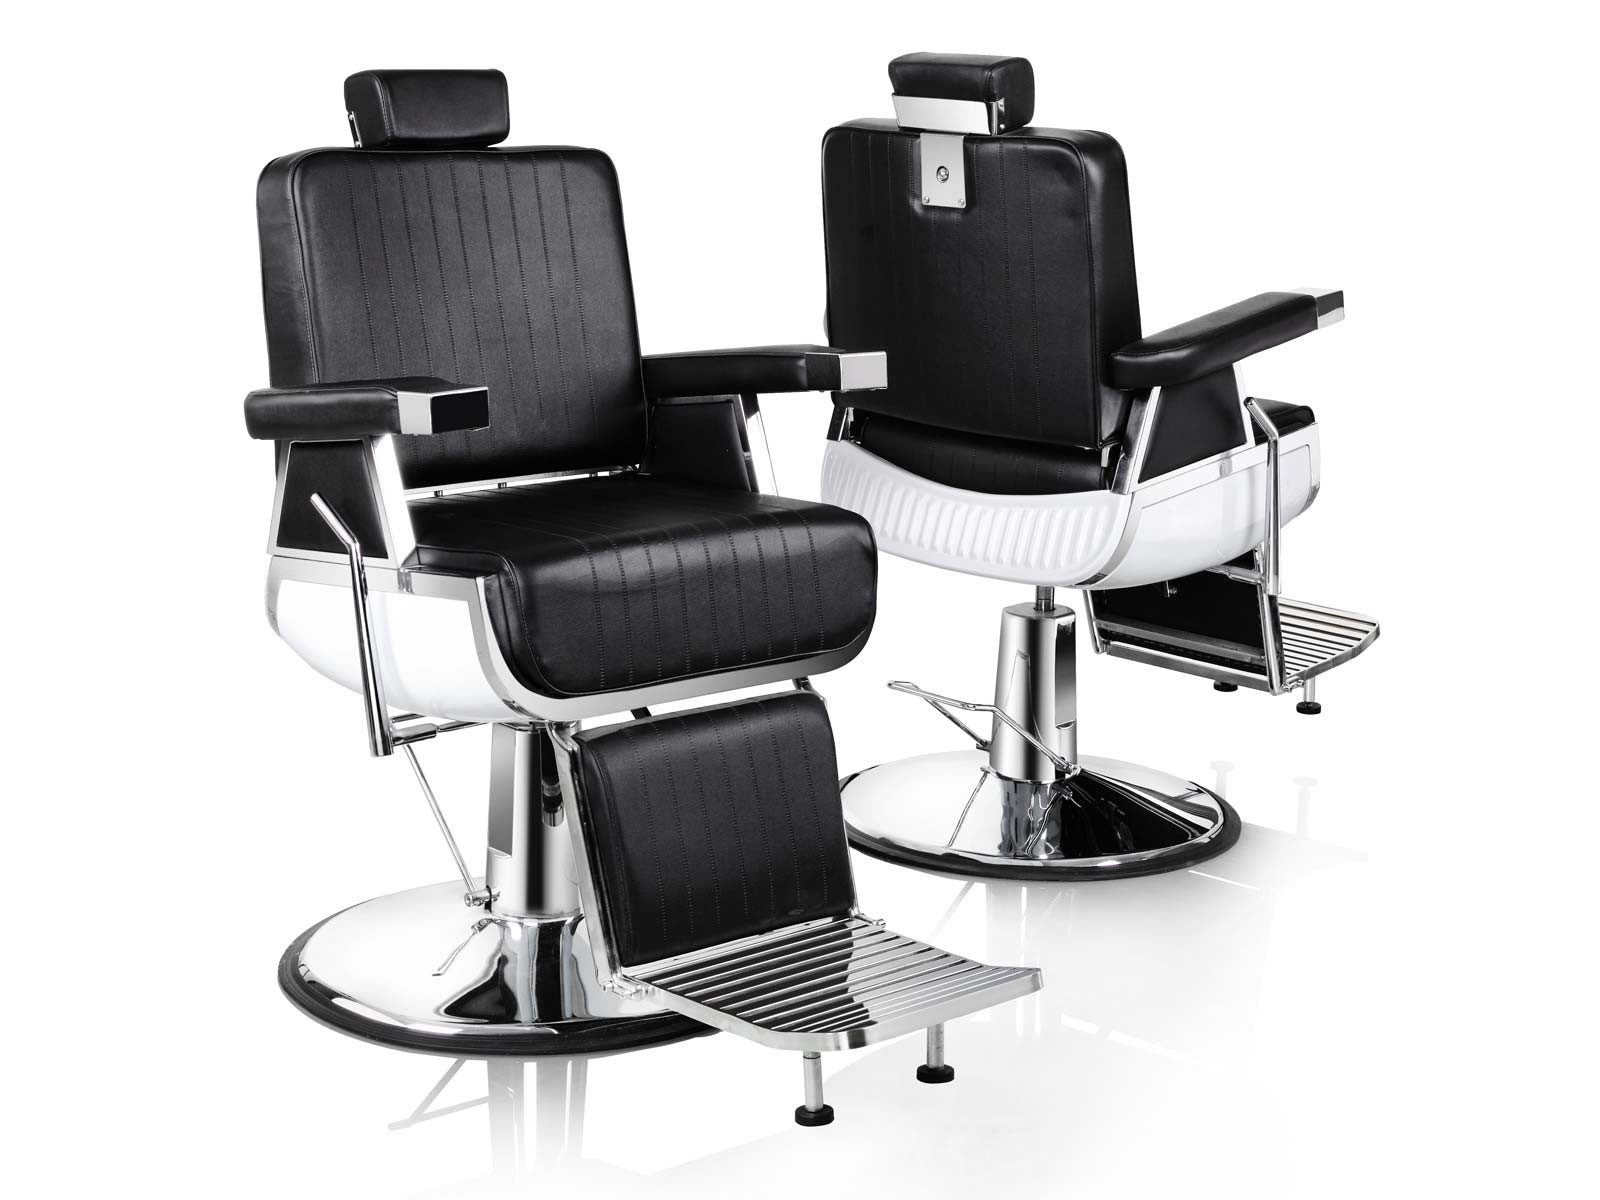 Inspiring barber chairs for sale for salon furniture with cheap barber chairs for sale